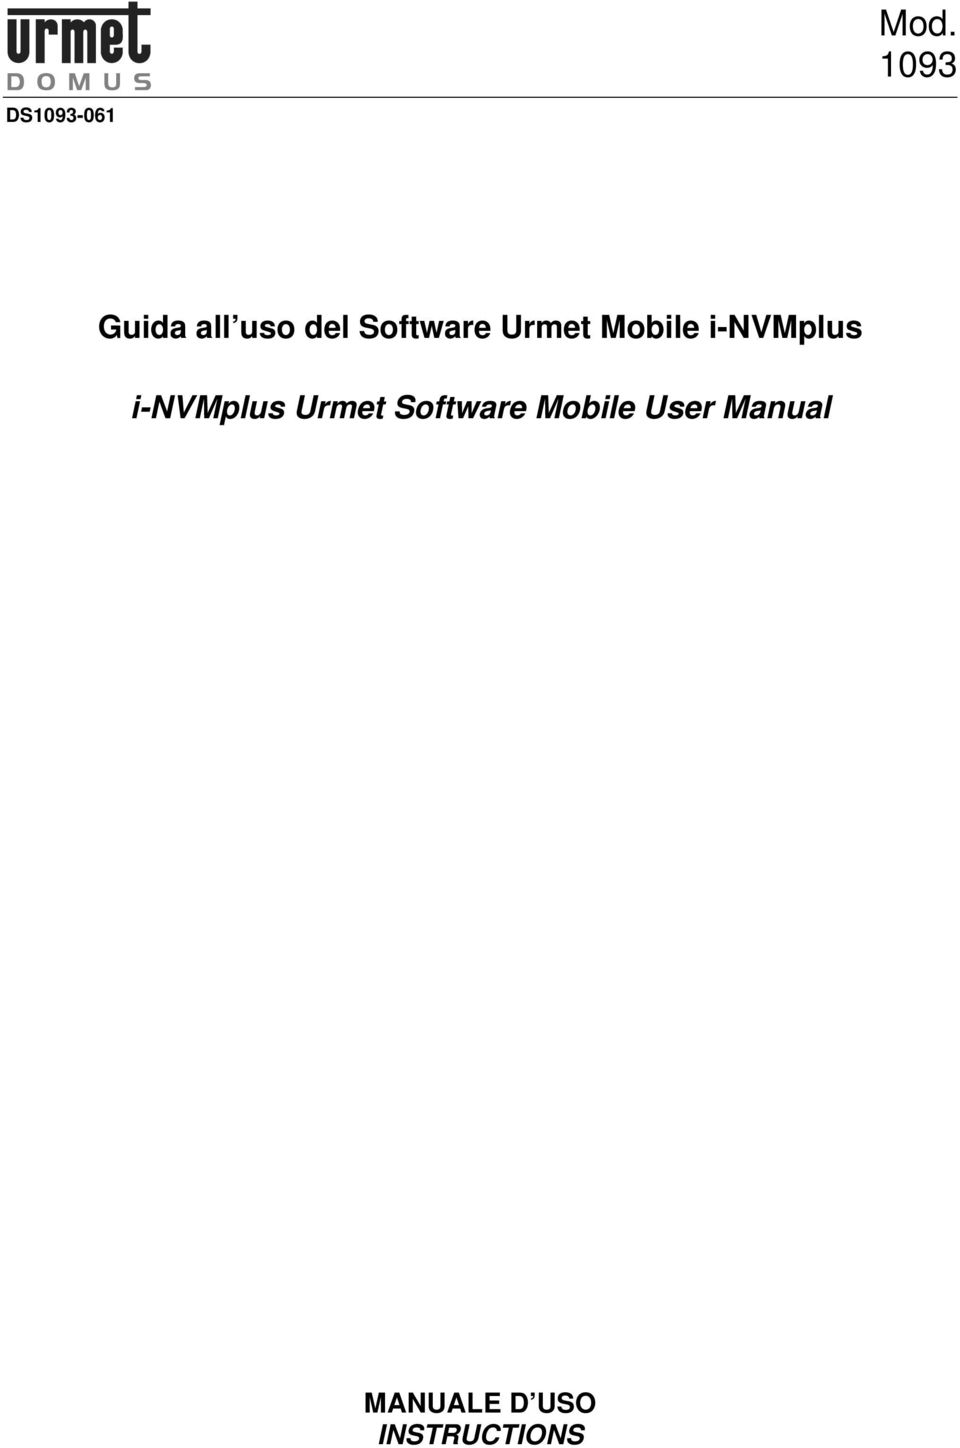 i-nvmplus Urmet Software Mobile